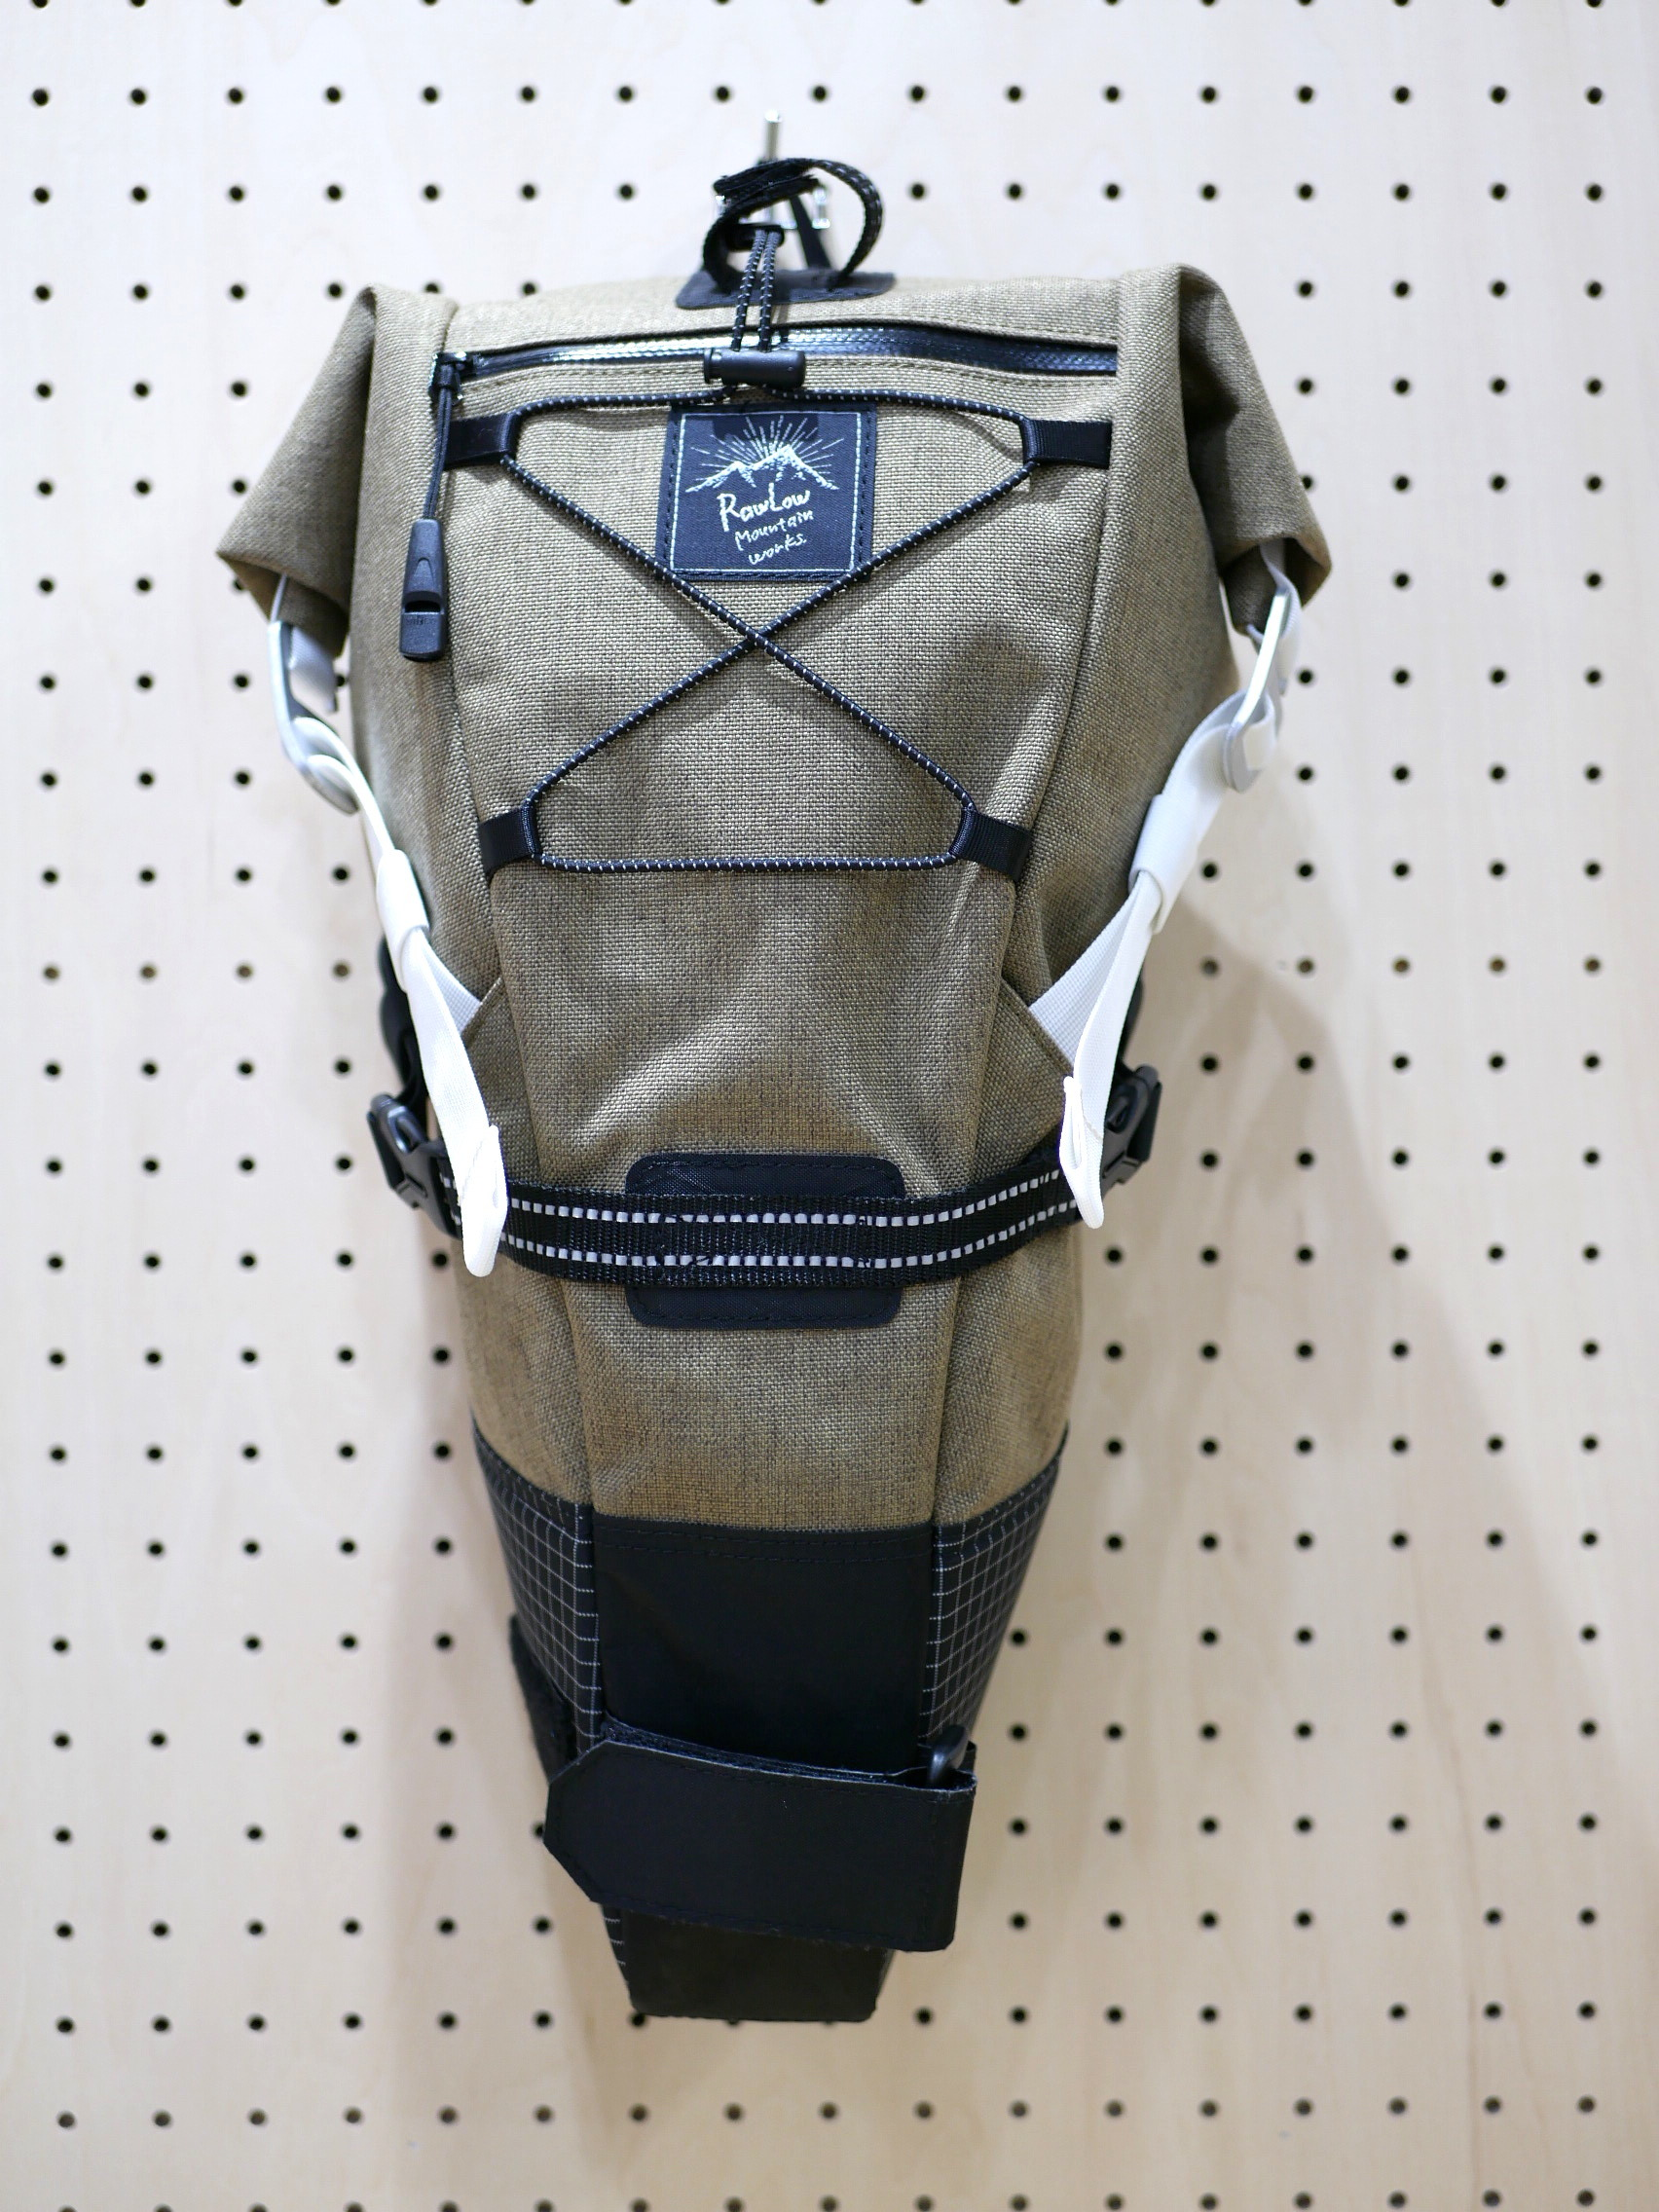 RAWLOW MOUNTAIN WORKS / BIKE'N HIKE BAG(OATMEAL)